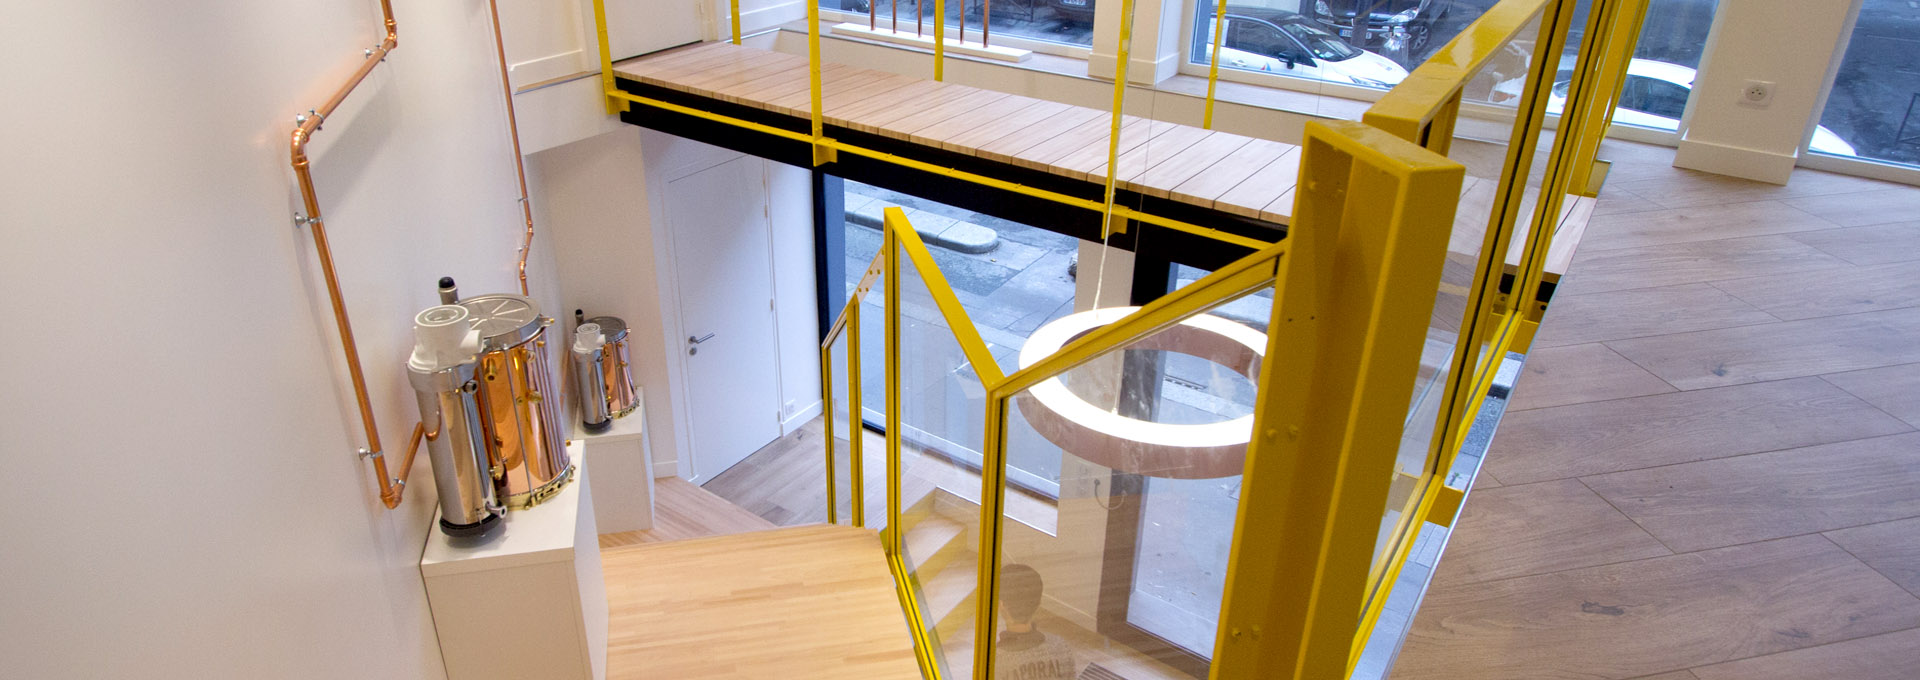 P2-Agence-Avous-Retail-Showroom-Design-Paris-MP-Gaz-Escalier-metal-bois-verre-passerelle